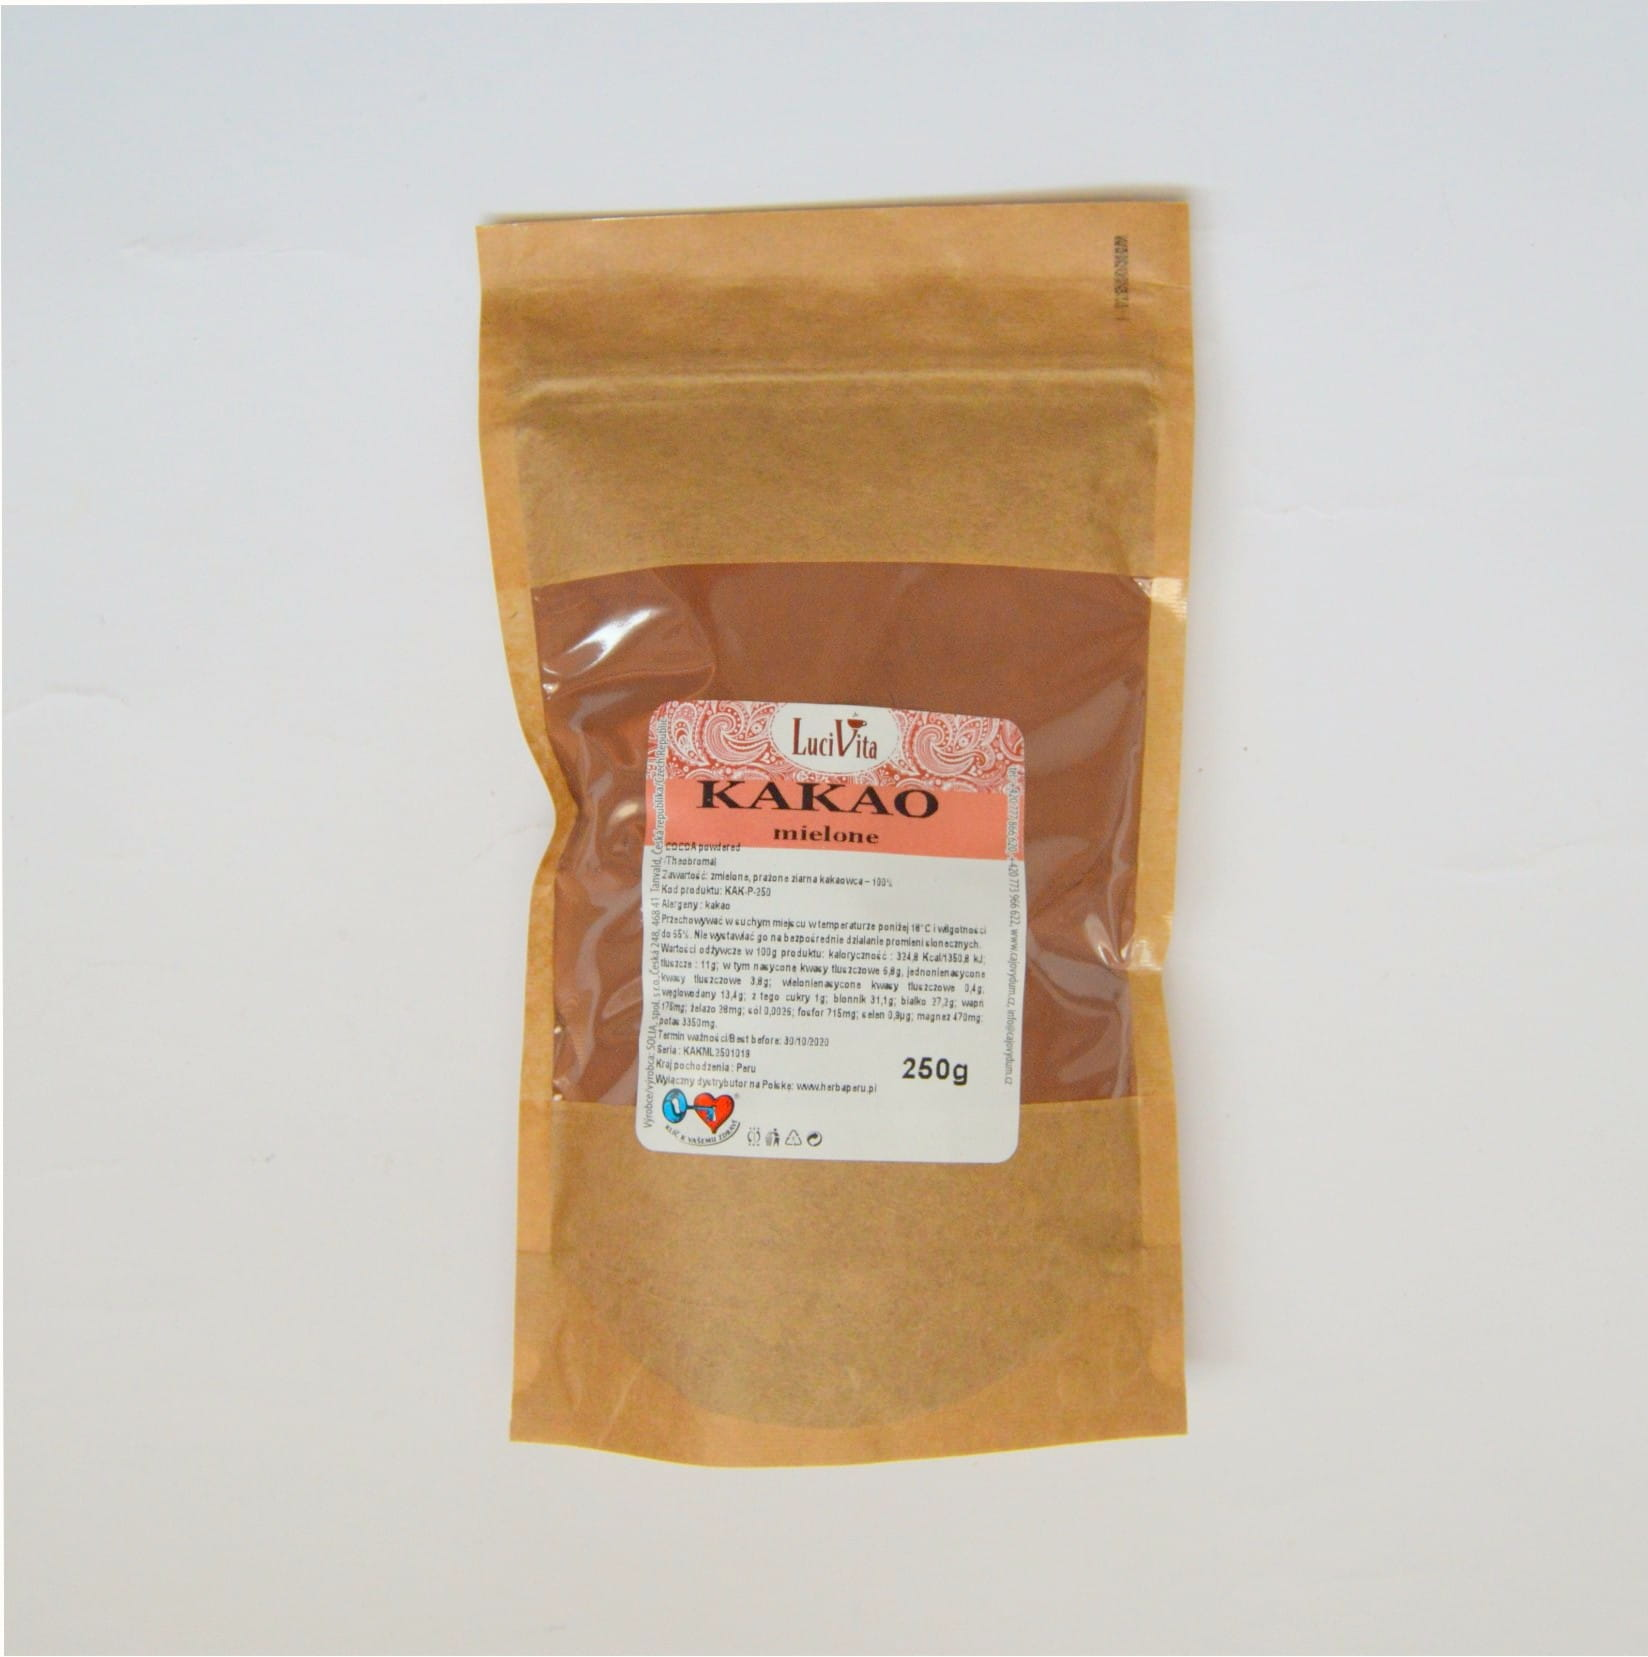 Cocoa beans - powdered - 250g